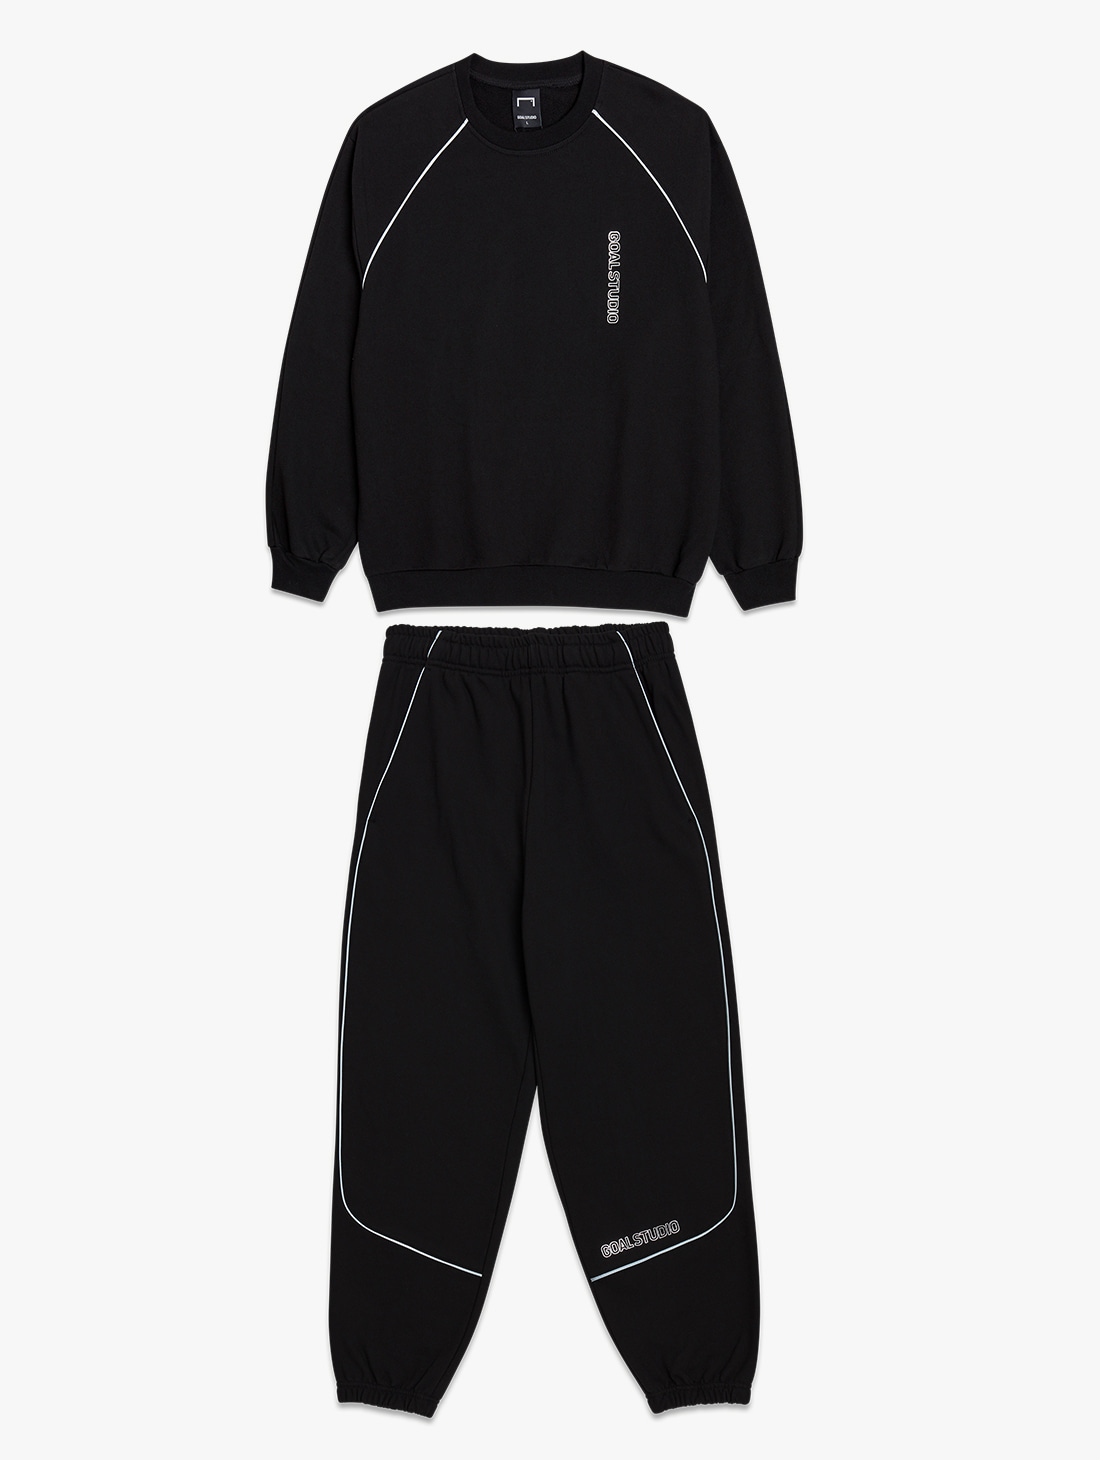 GOALSTUDIO [10% OFF] PIPING SWEATSHIRTS & JOGGER PANTS SET